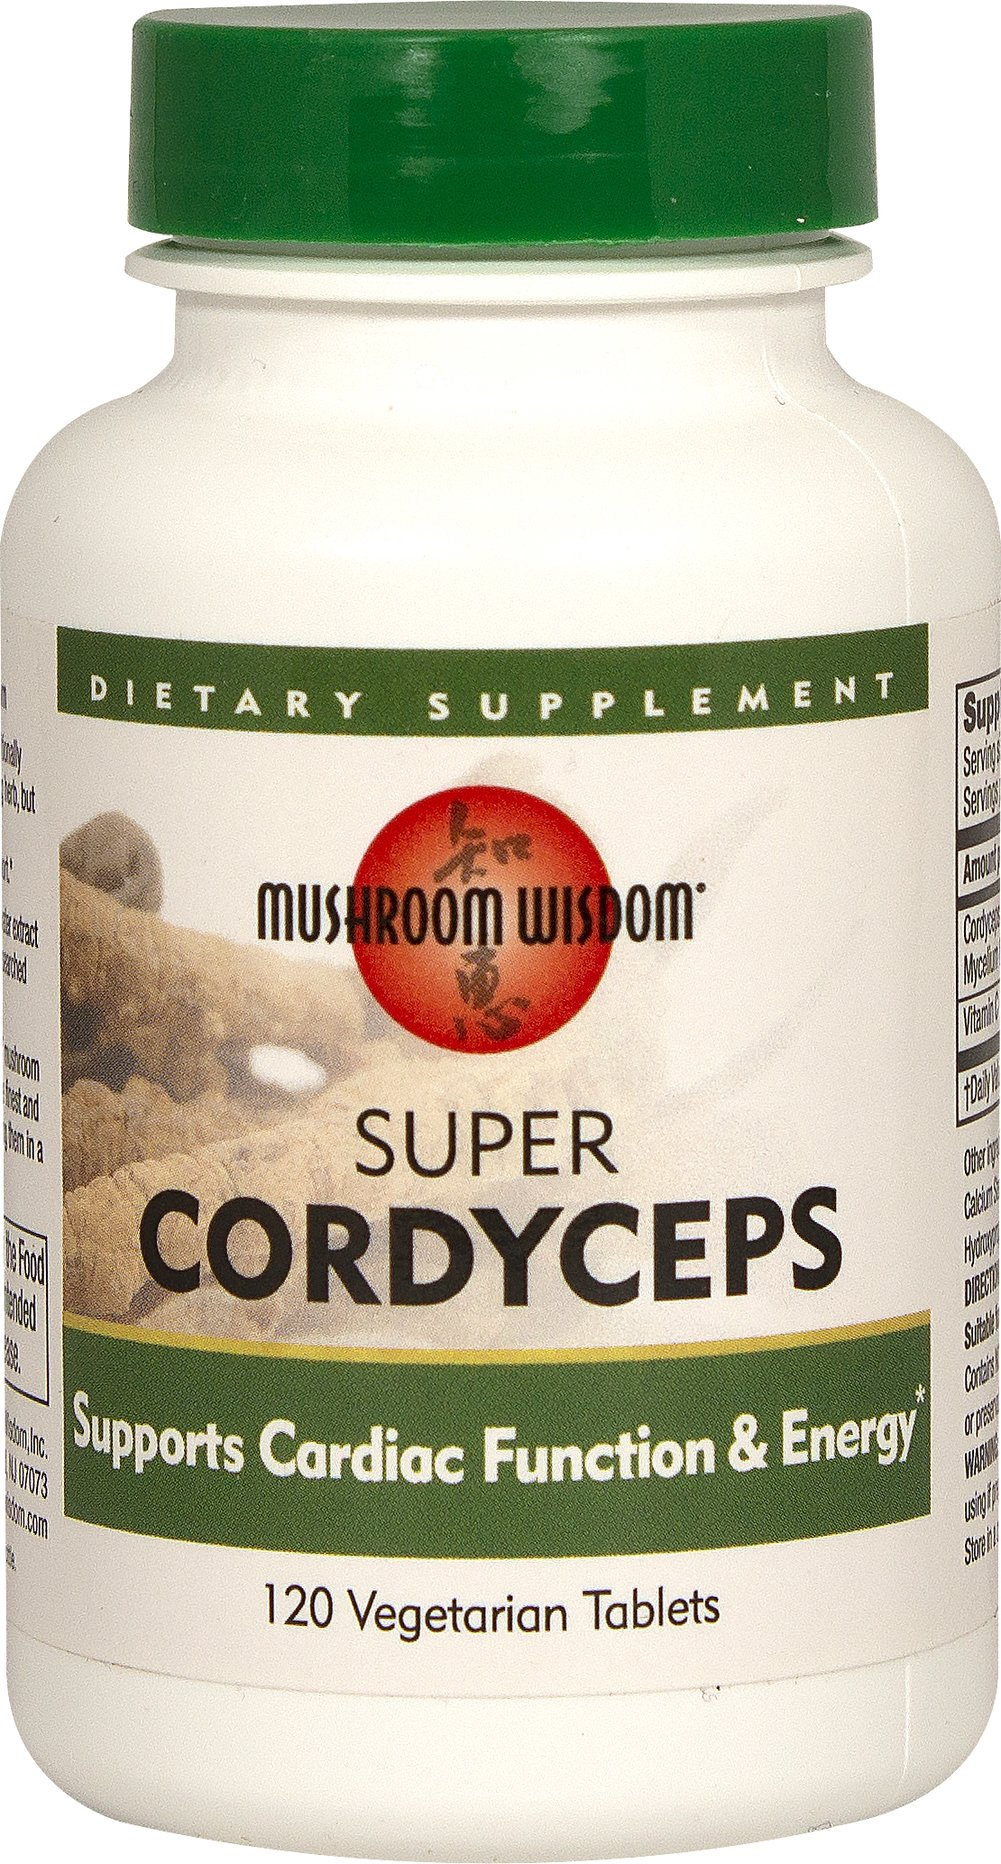 Cordyceps Super <p><strong>From the Manufacturer's Label: </strong></p><p></p><p>Energy and Cardio Support**<br /><br />Cordyceps (Cordyceps sinensis) has a very long history of use in traditional Chinese Medicine where it is regarded as the highest quality remedies.  Traditionally used a longevity and vitality aid, Cordyceps has gained fame for its ability to build energy and increase endurance.**</p><p>Manufactured